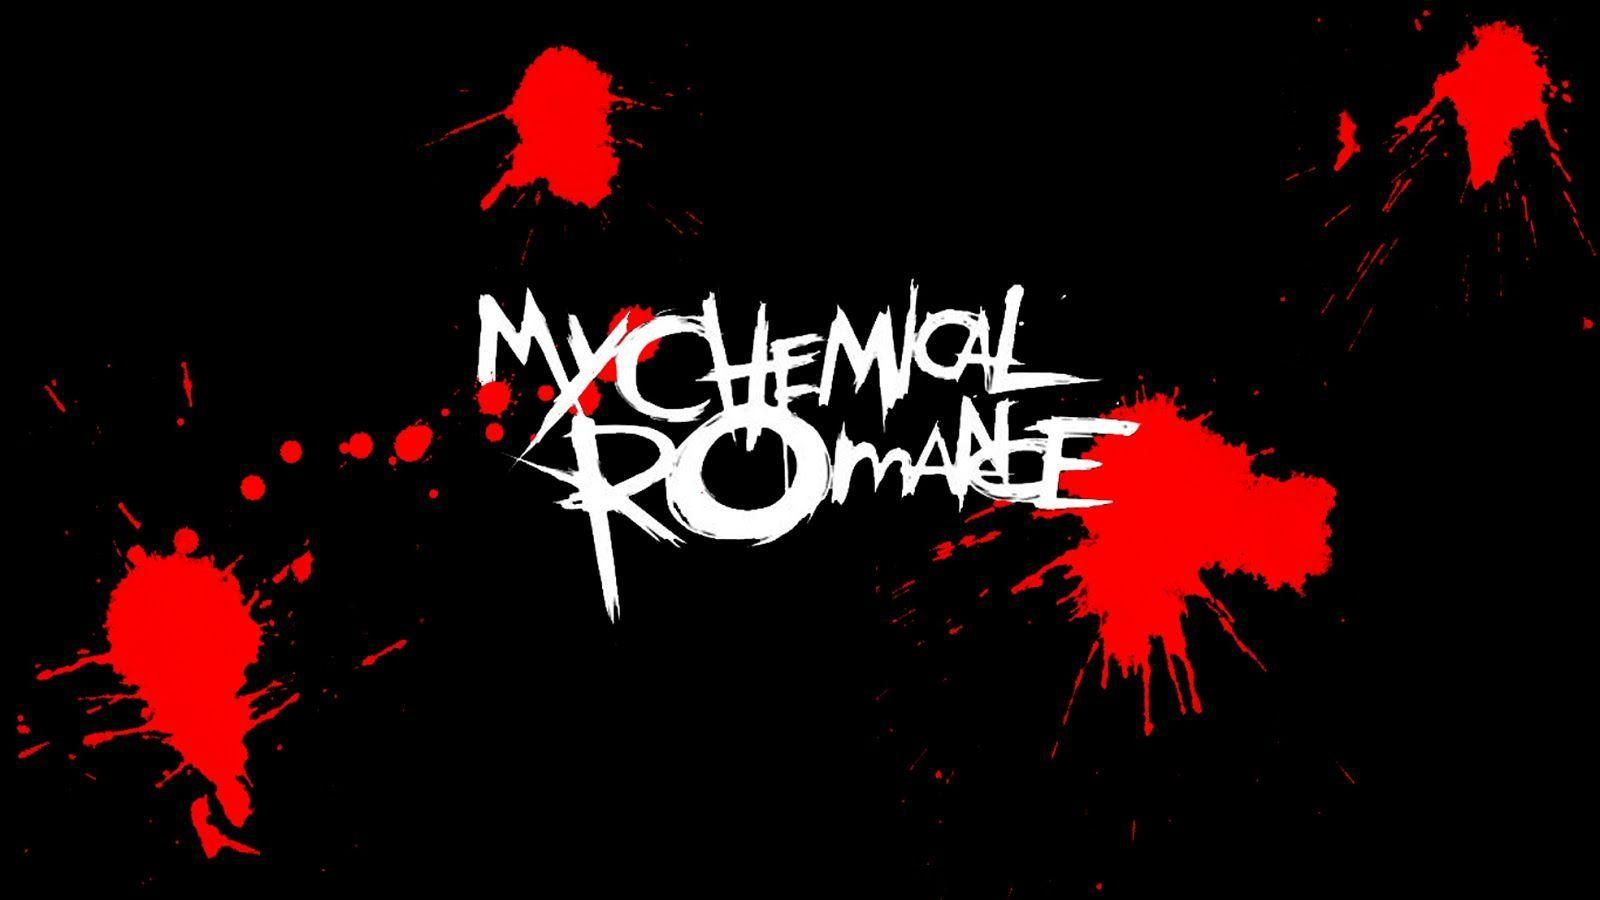 My Chemical Romance Backgrounds Wallpaper Cave HD Wallpapers Download Free Images Wallpaper [1000image.com]